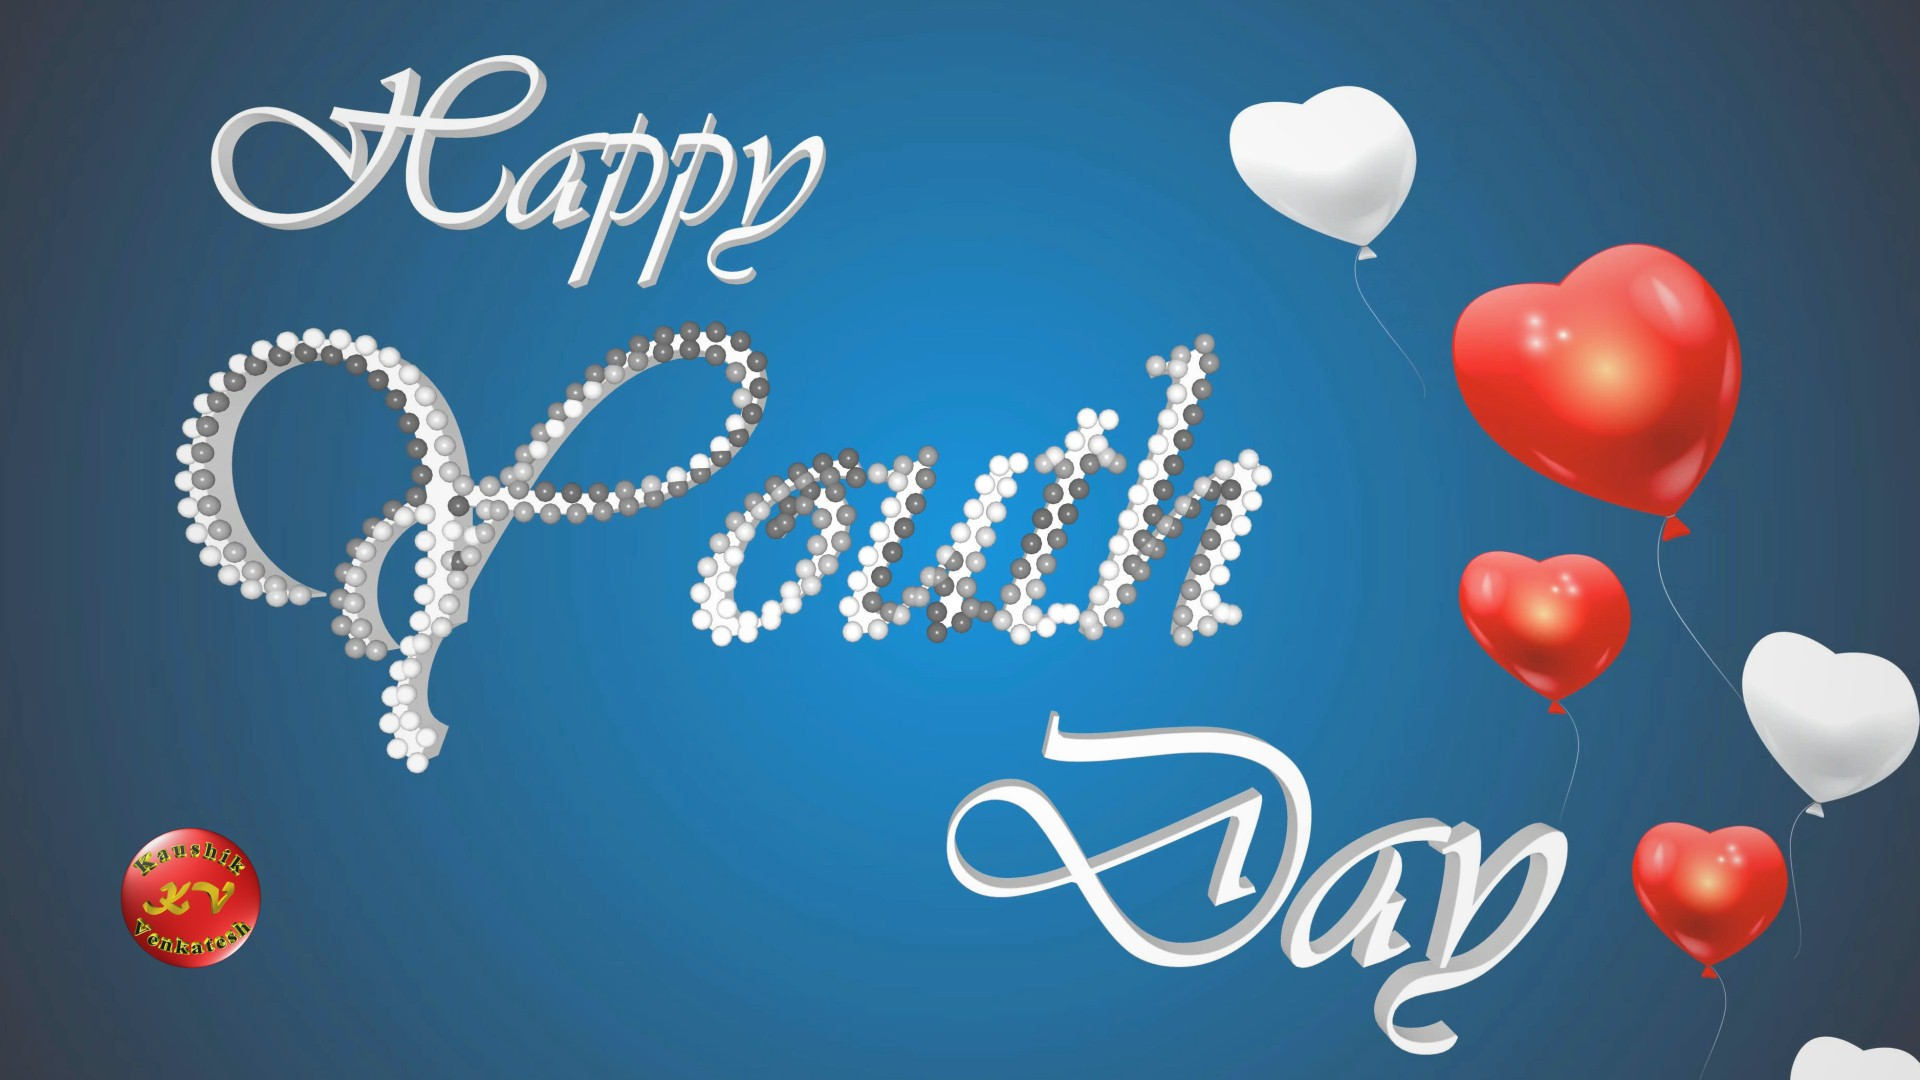 Greetings Image of Happy Youth Day 2021 Wishes Video